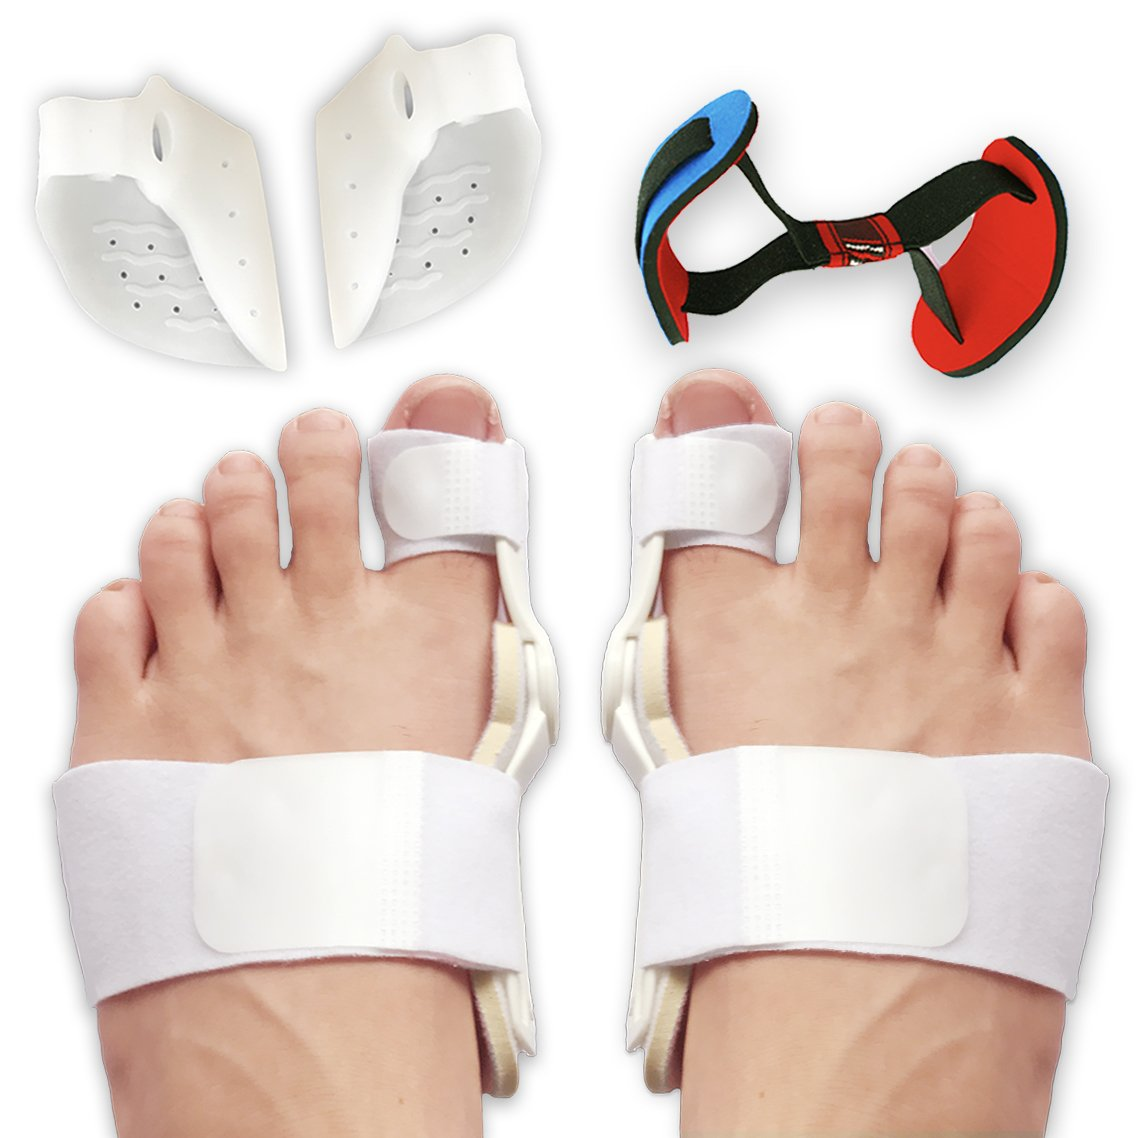 Bunion Corrector and Bunion Splint Care Kit for Bunion Relief, Hallux Valgus Corrector, Big Toe Straightener Brace, Big Toe Joint Protector, Bunion Pads Toe Separators Spacers Surgery Aid Night by Flyen